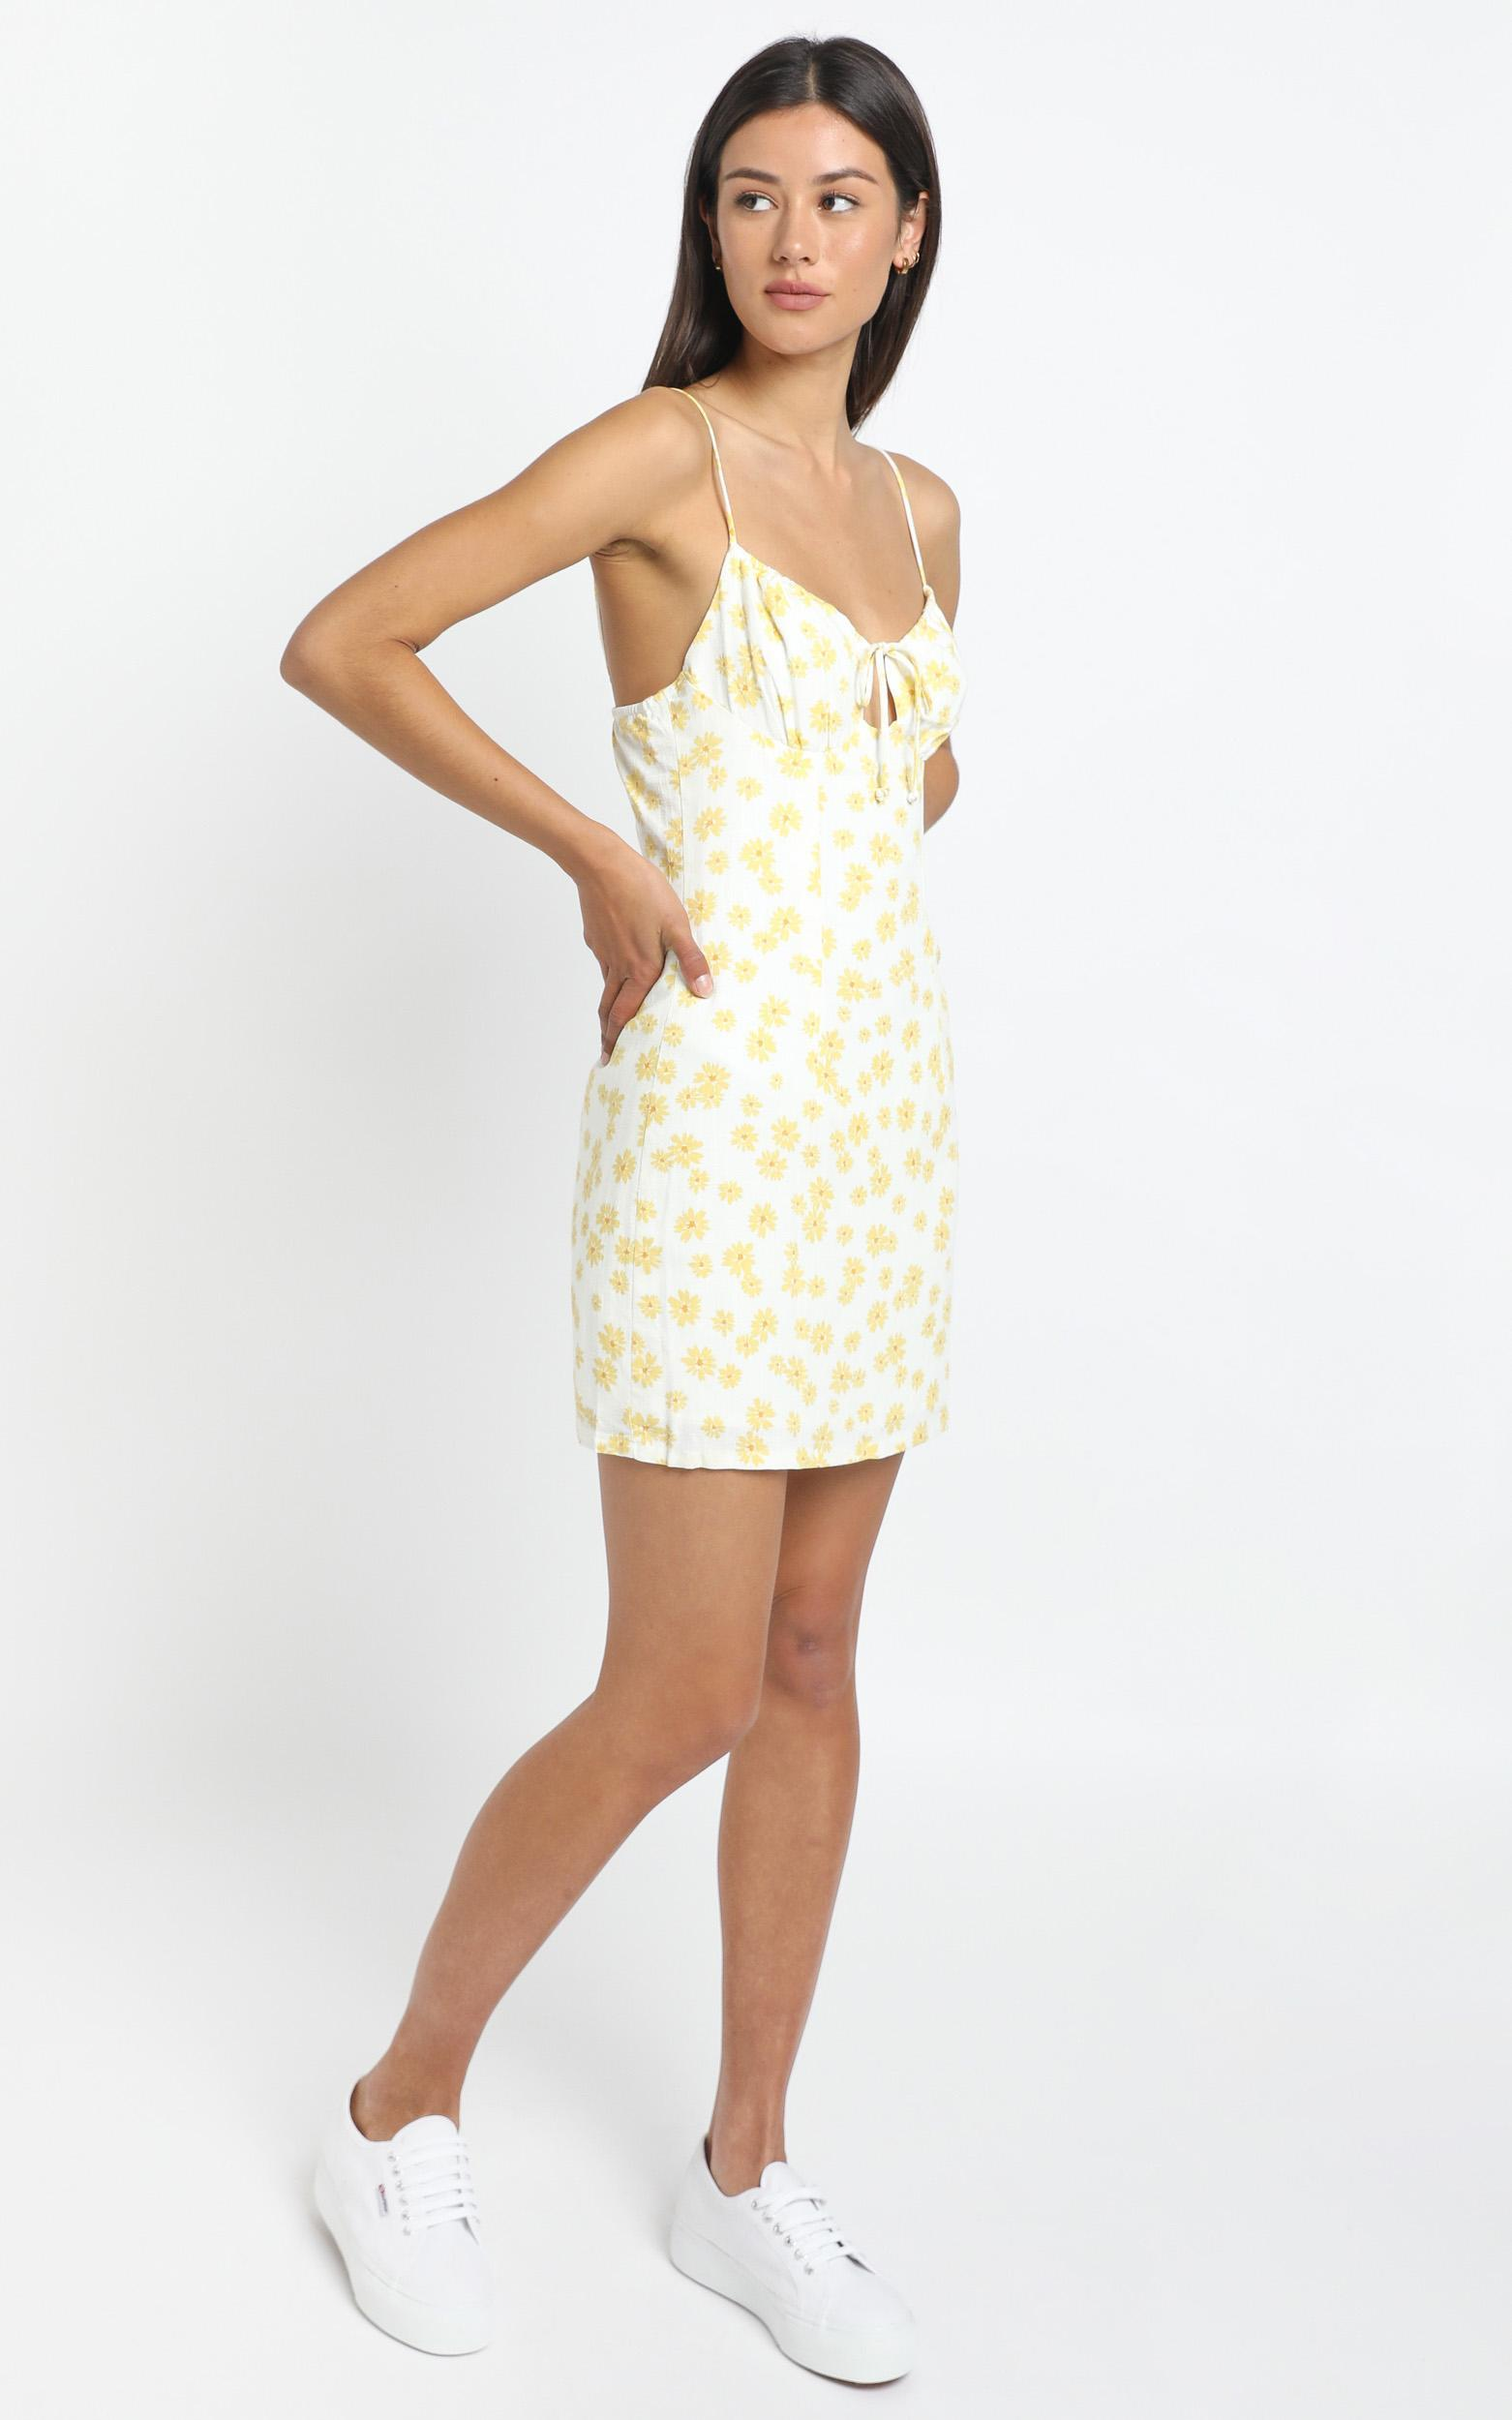 Pleasant View Dress in yellow - 8 (S), Yellow, hi-res image number null